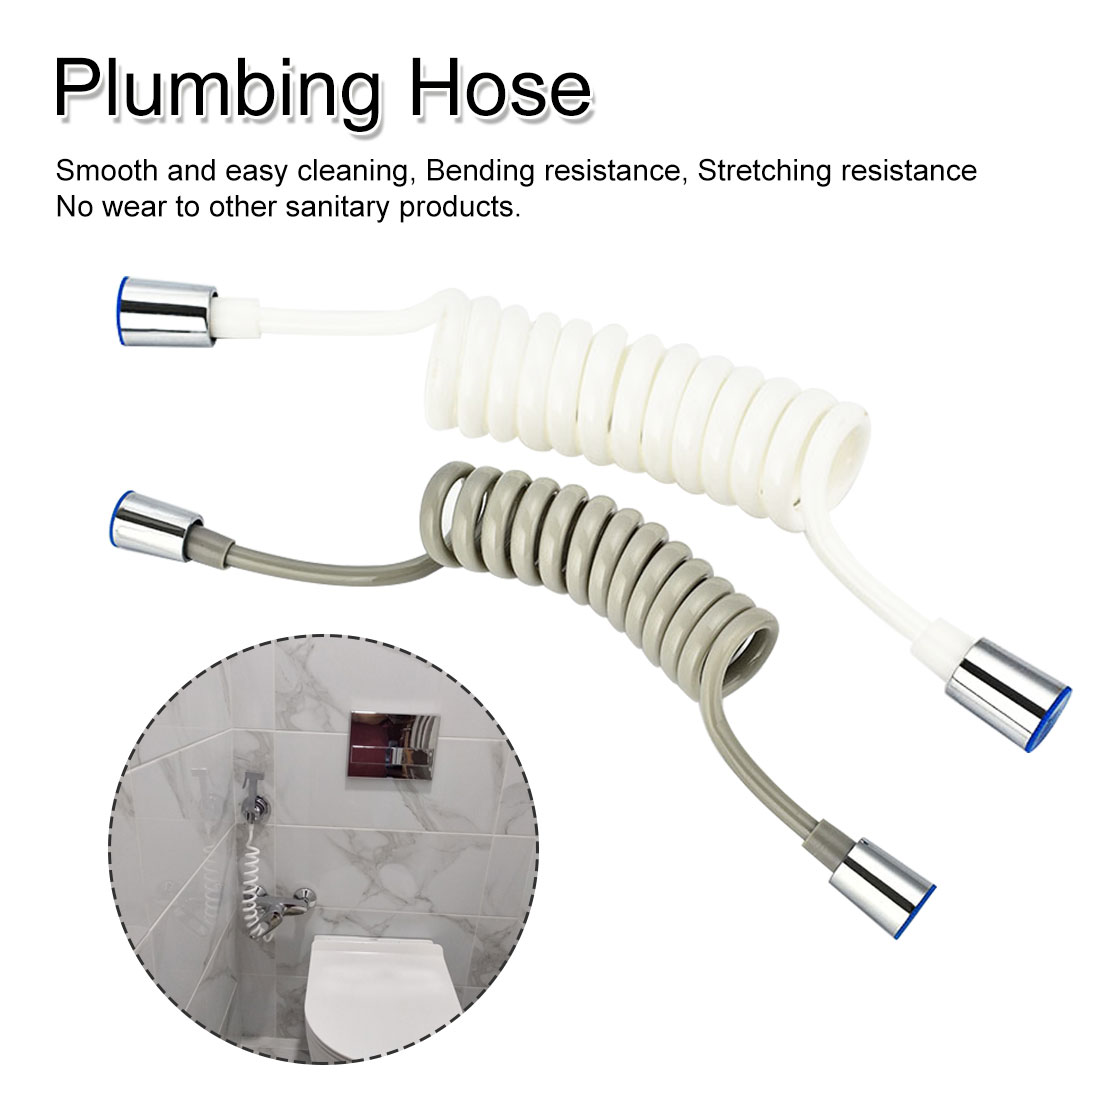 1.5m ABS Hose Water Plumbing Toilet Bidet Sprayer Gun Connect Pipe Flexible Telephone Line Style Spring Flexible Shower